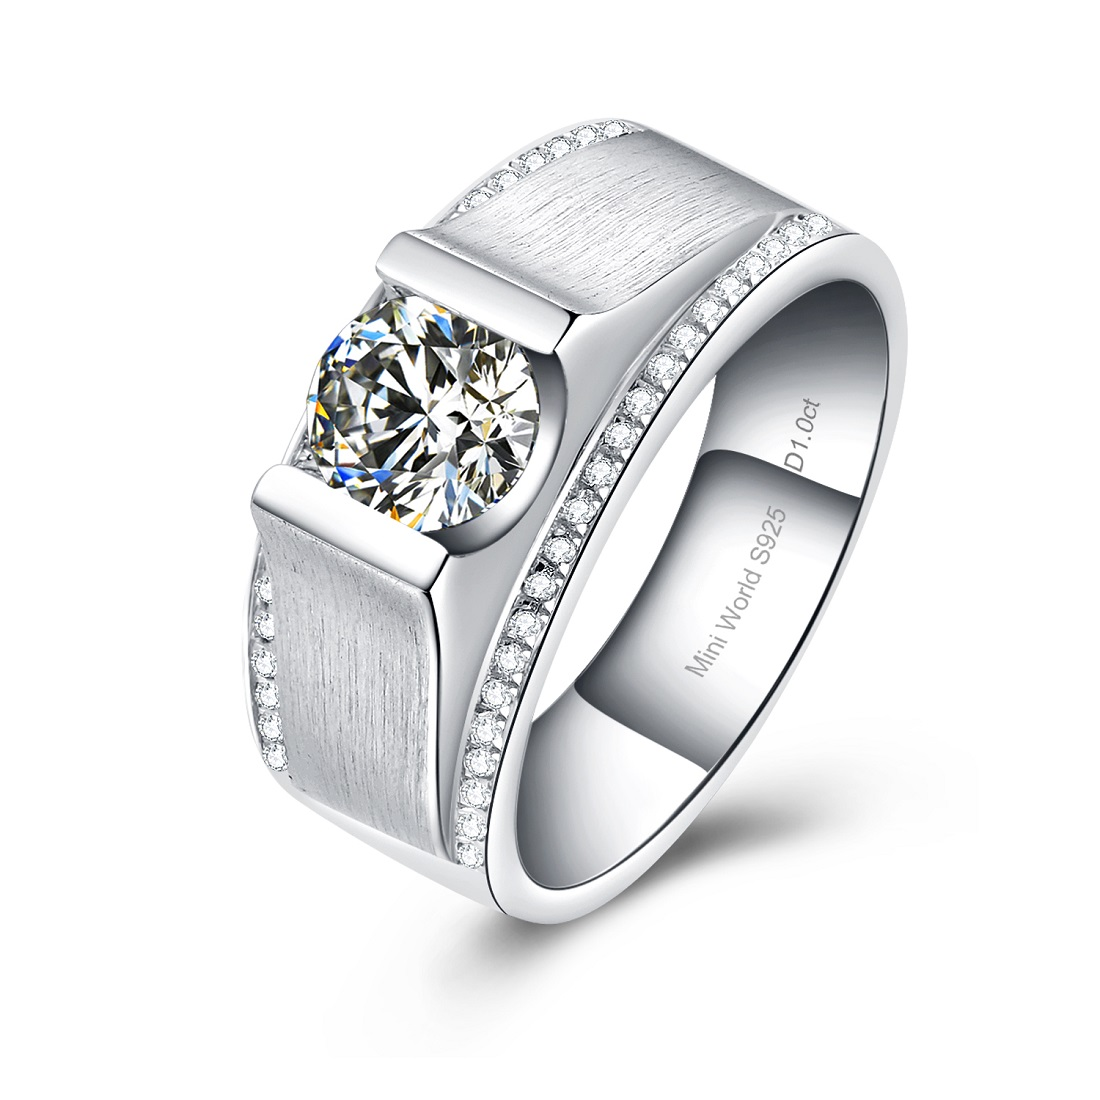 1 carat zircon stone ring for man